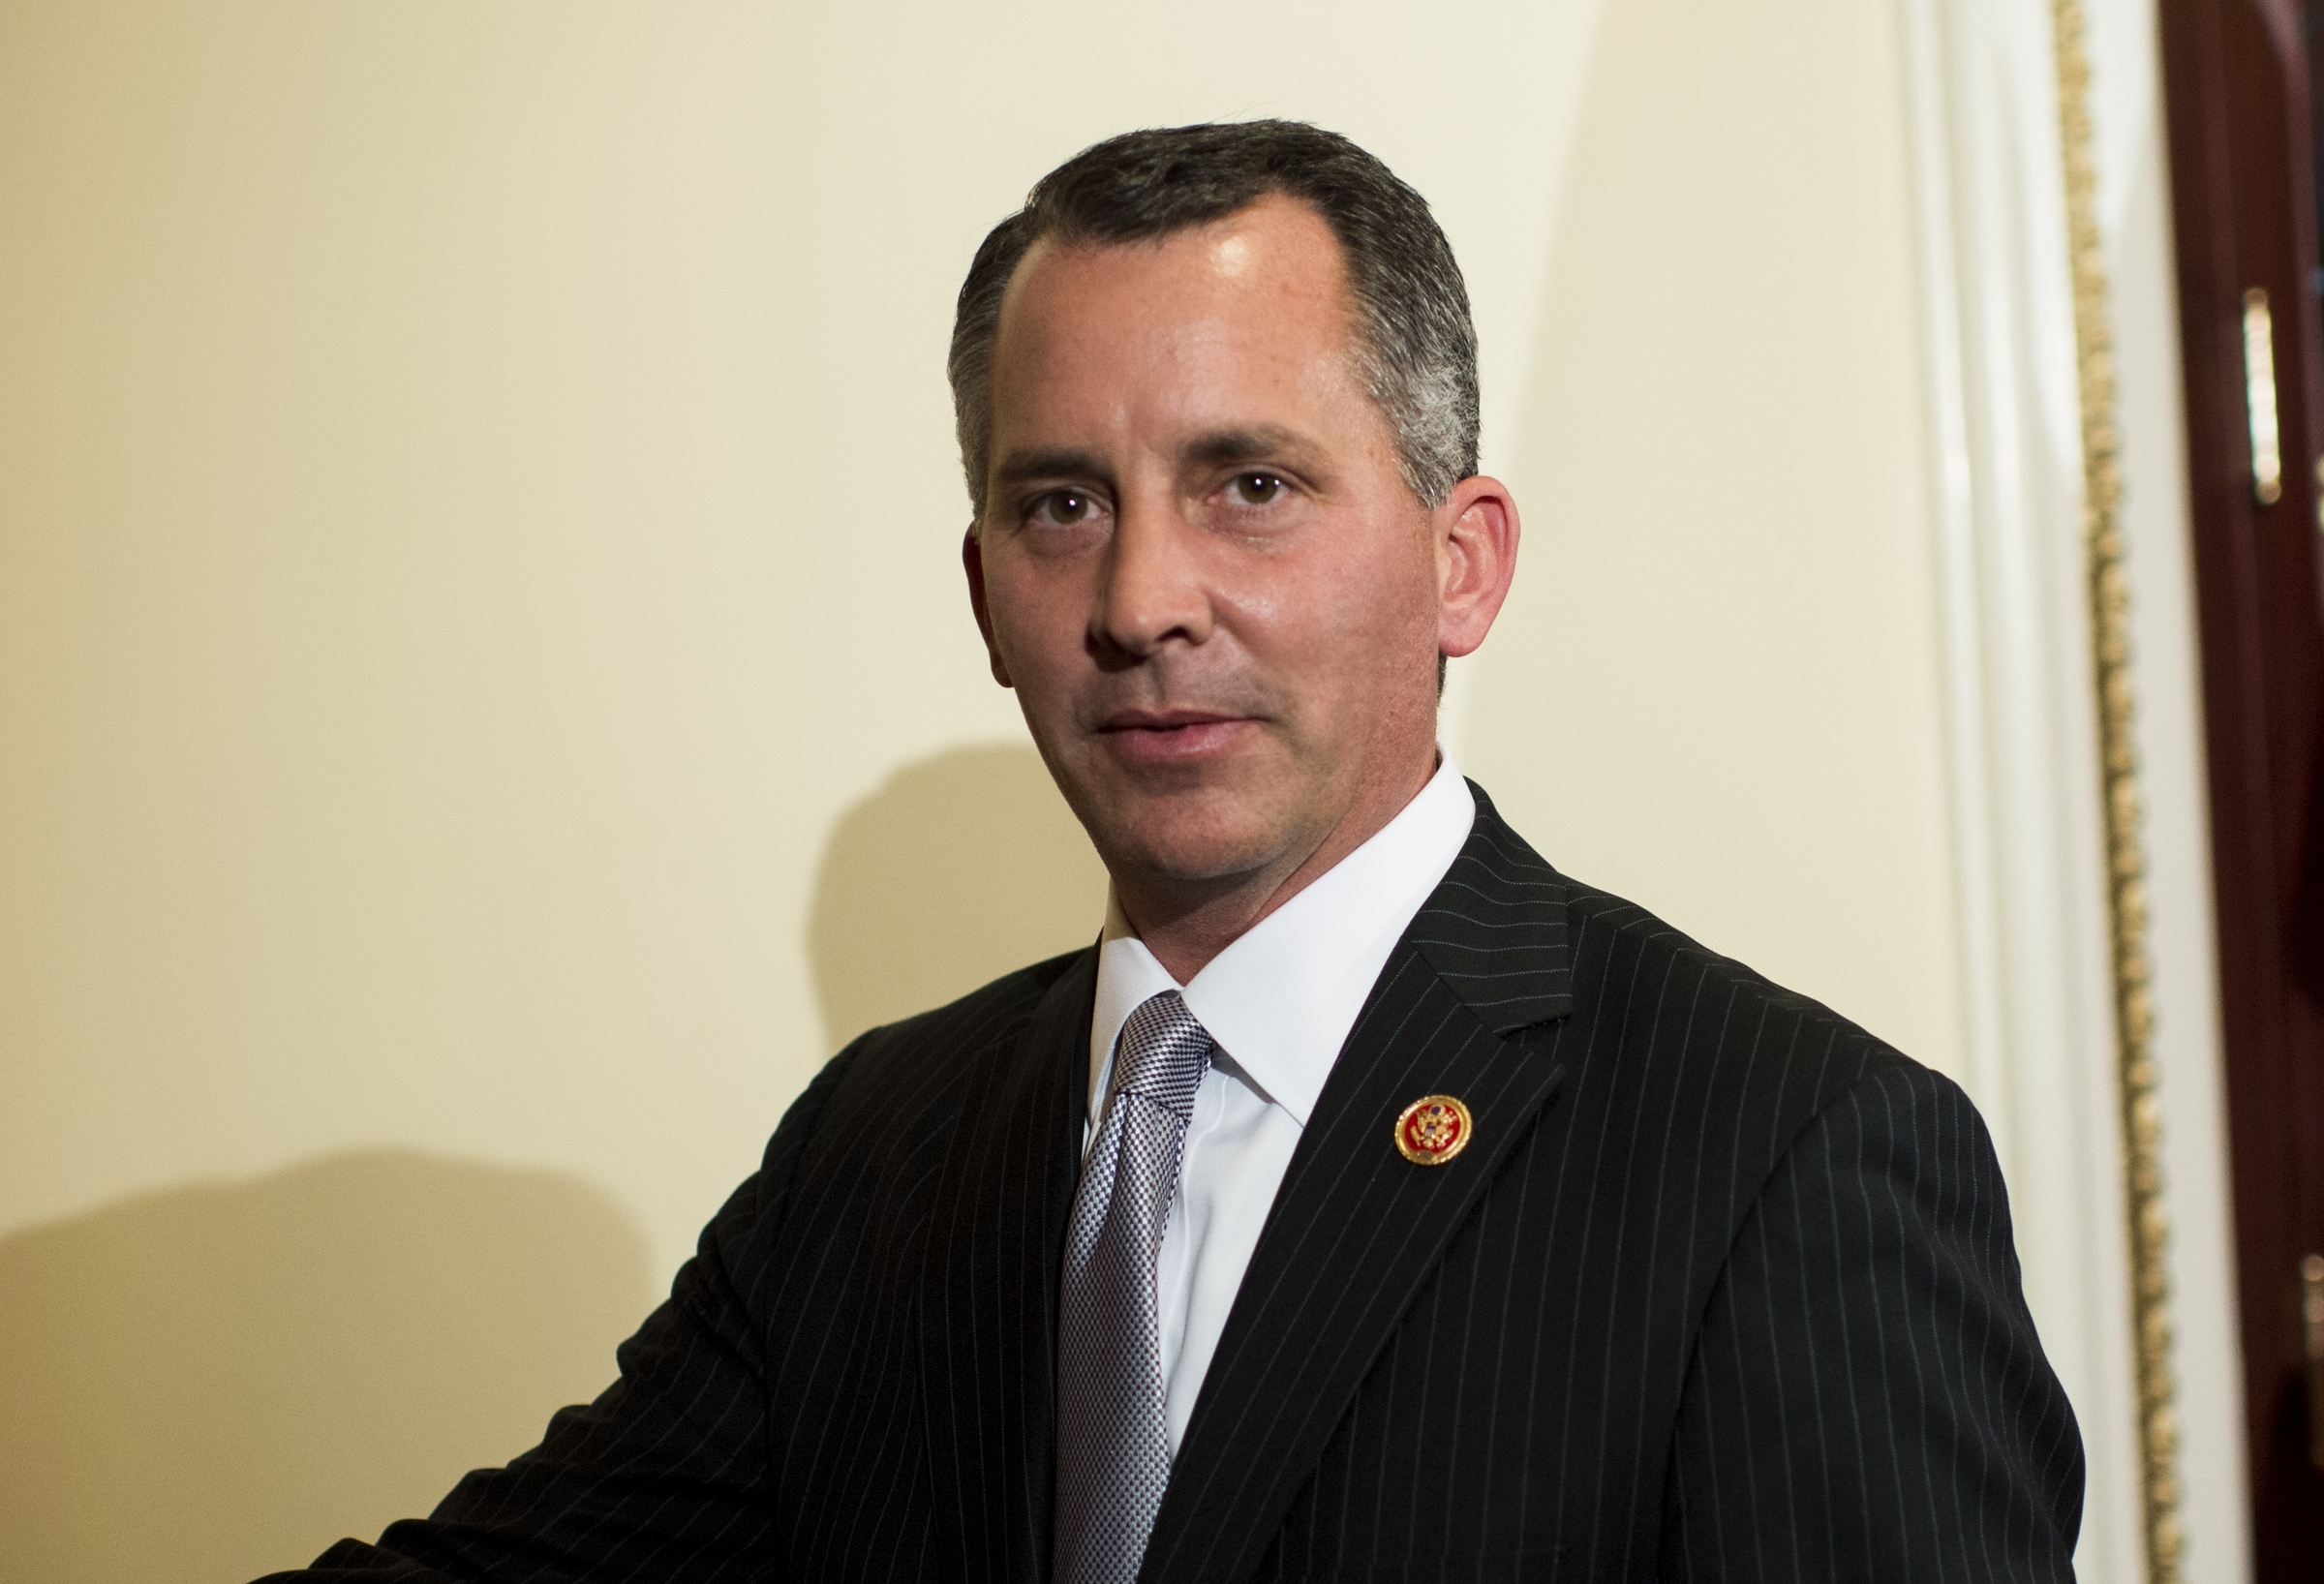 Rep. David Jolly of Florida would block members of Congress from soliciting donations. (Photo By Bill Clark/CQ Roll Call)